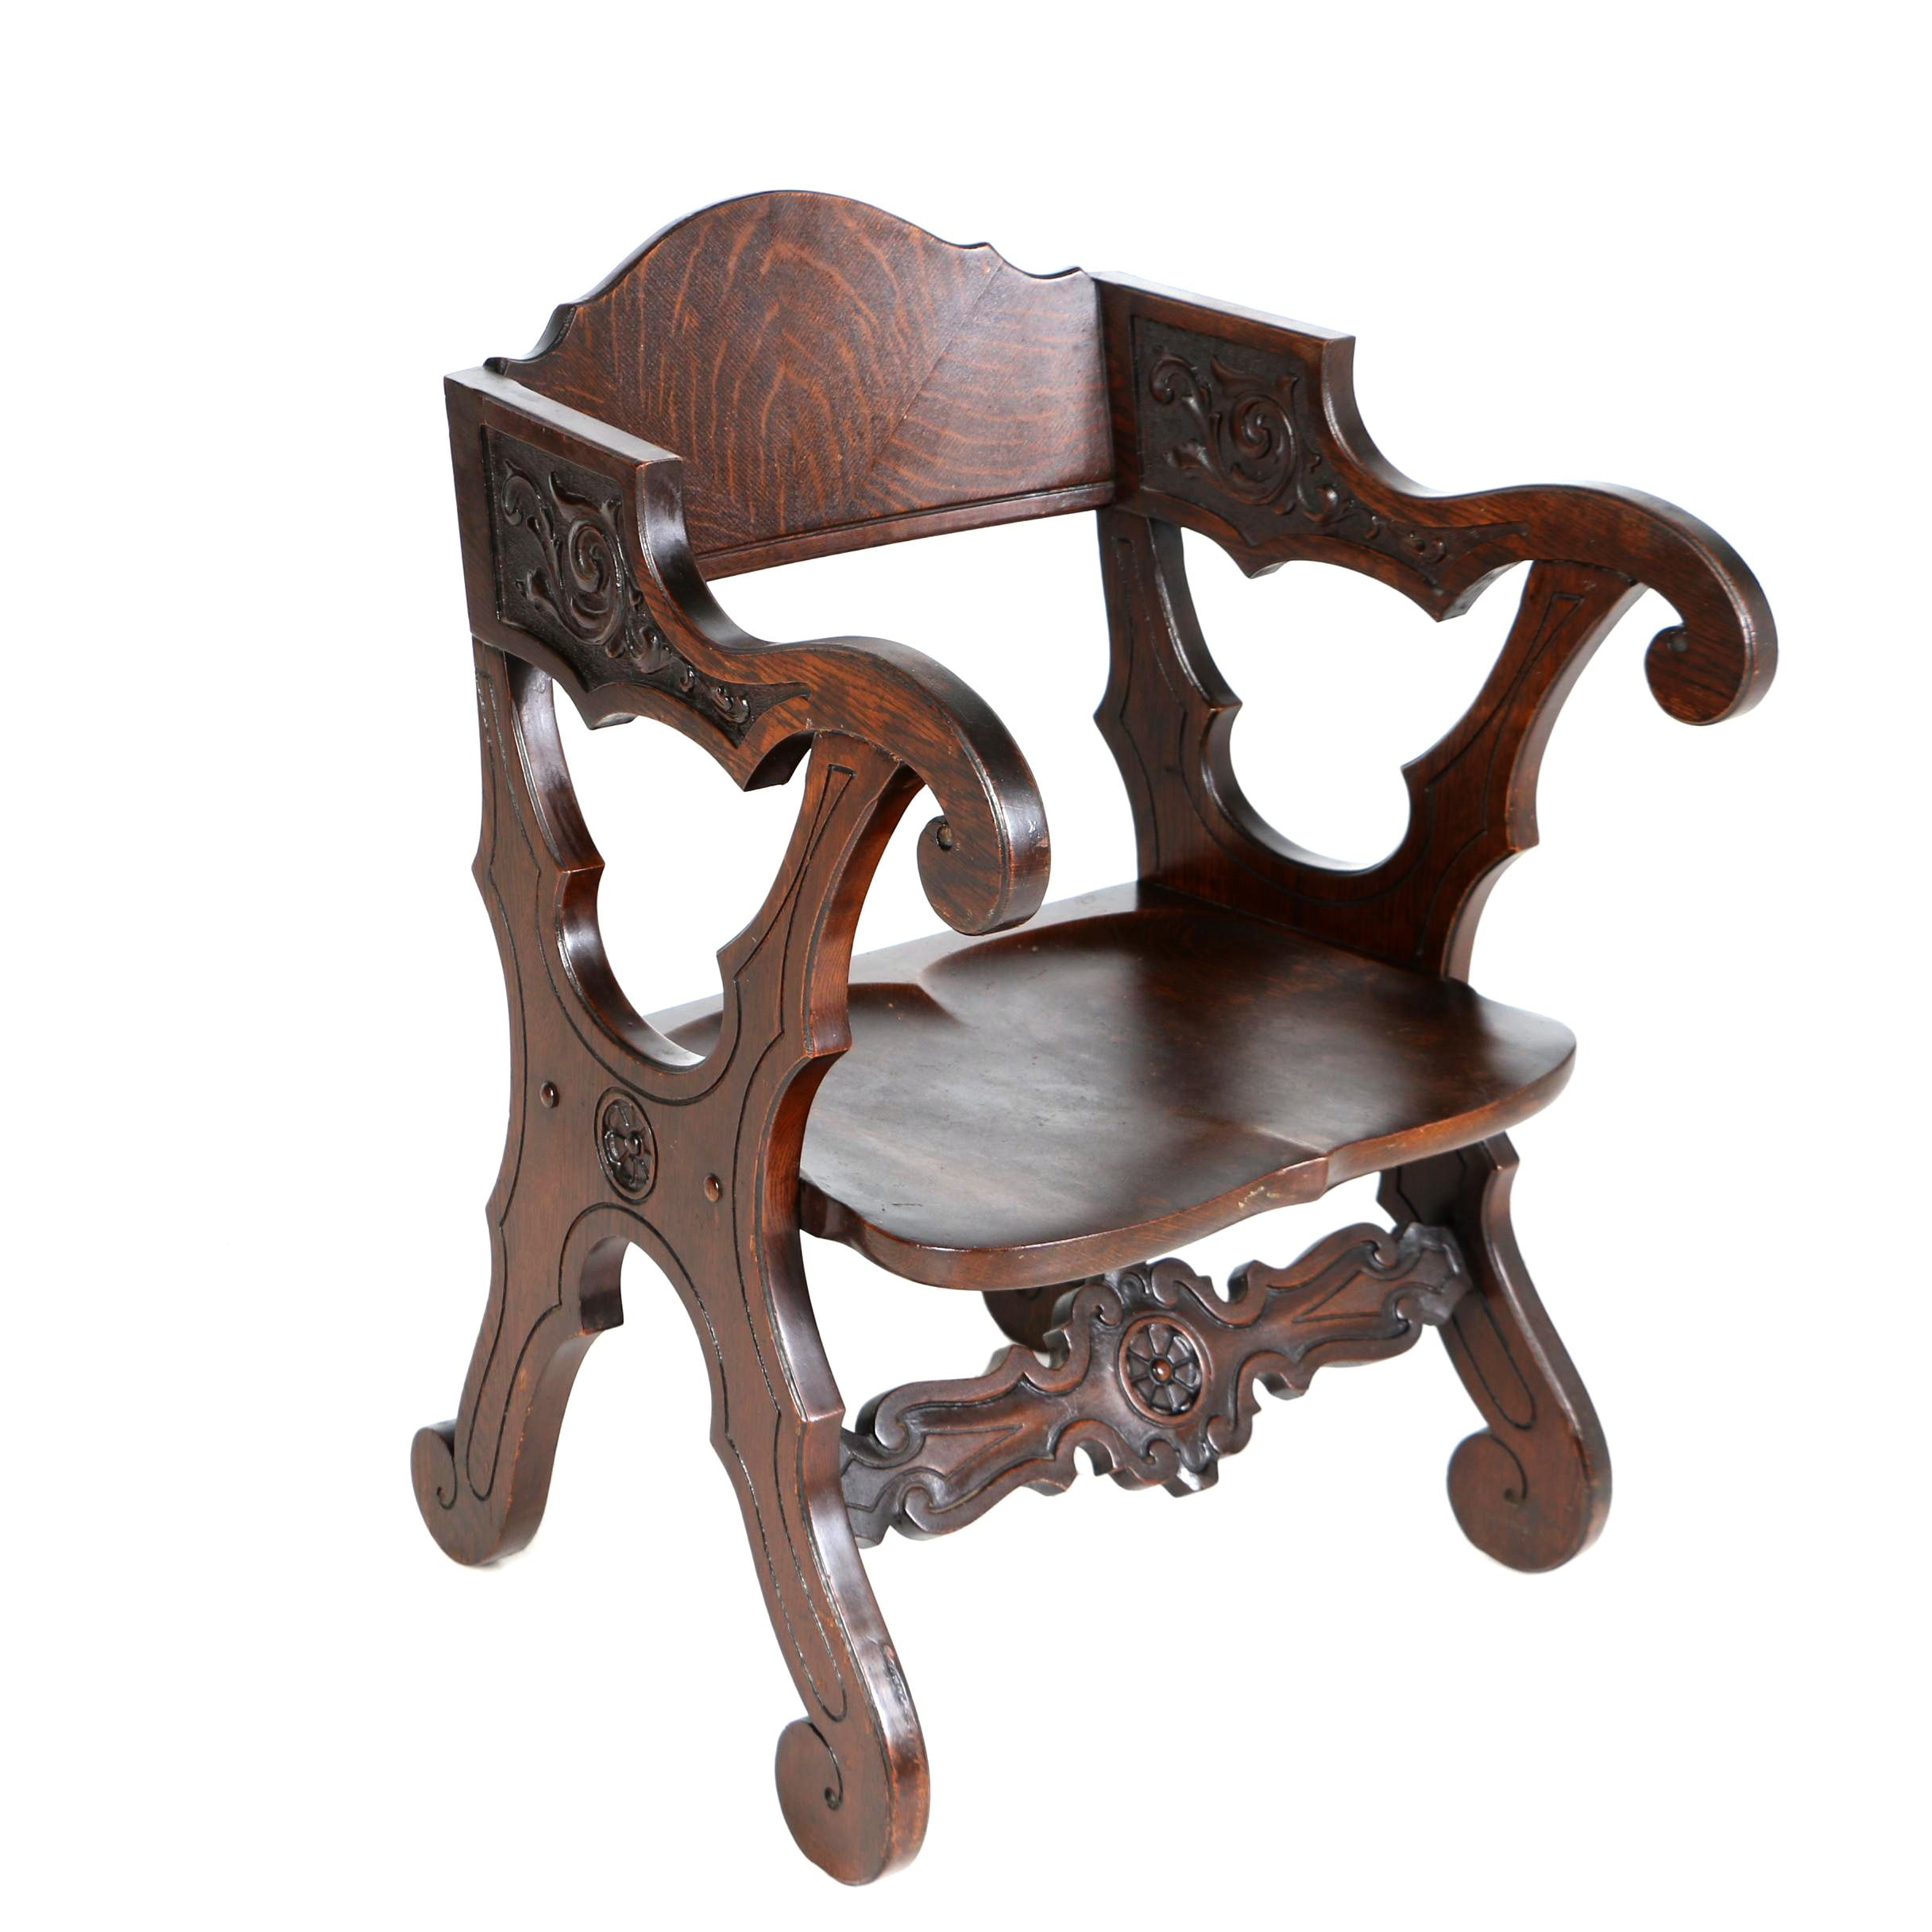 Late Victorian Renaissance Revival Oak Armchair, Late 19th/Early 20th Century